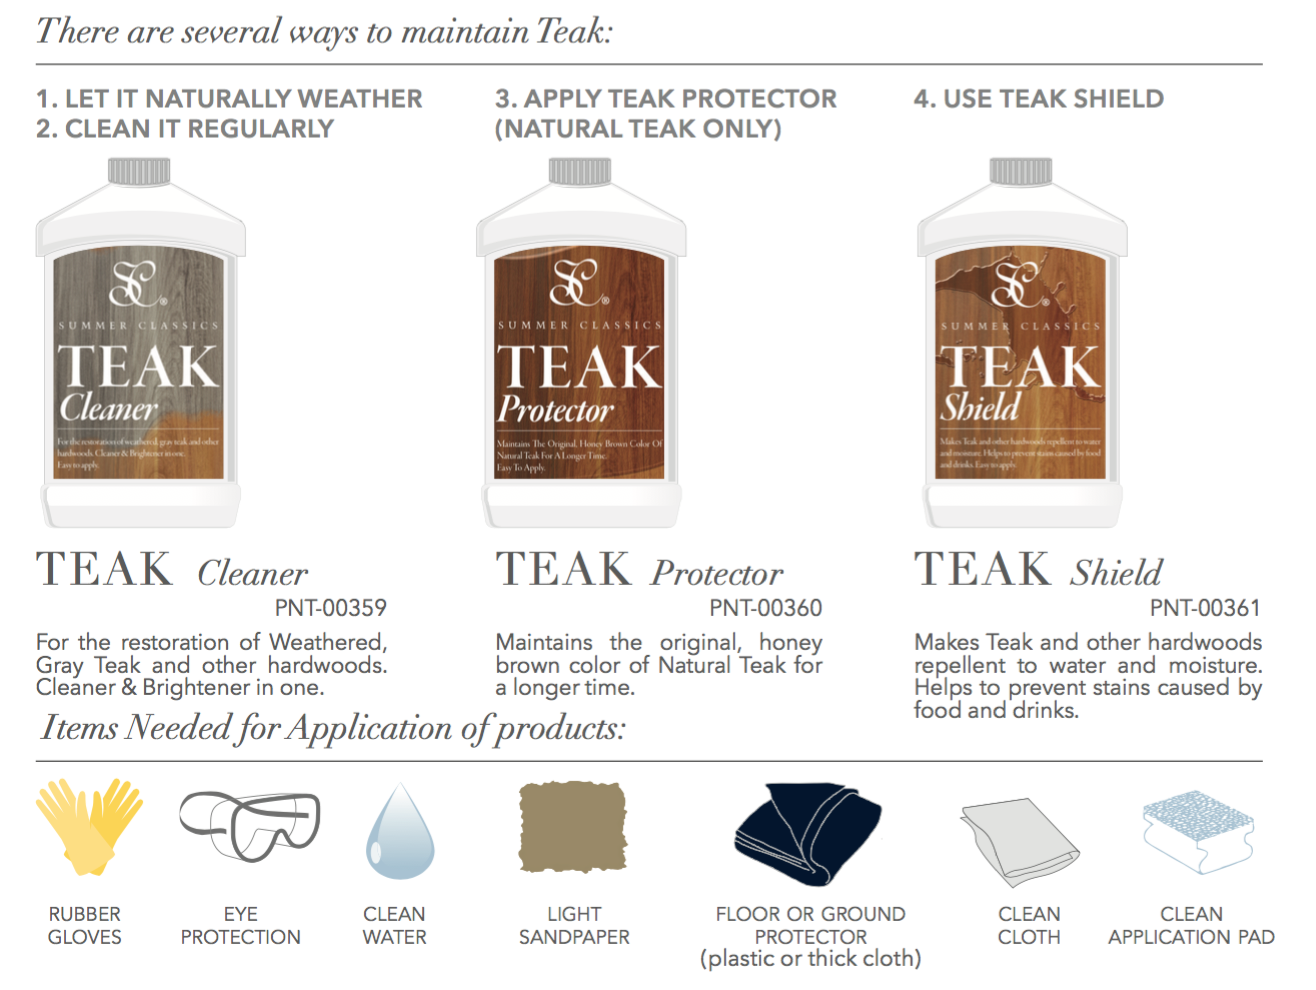 Summer Classics Teak Cleaner Protector Shield